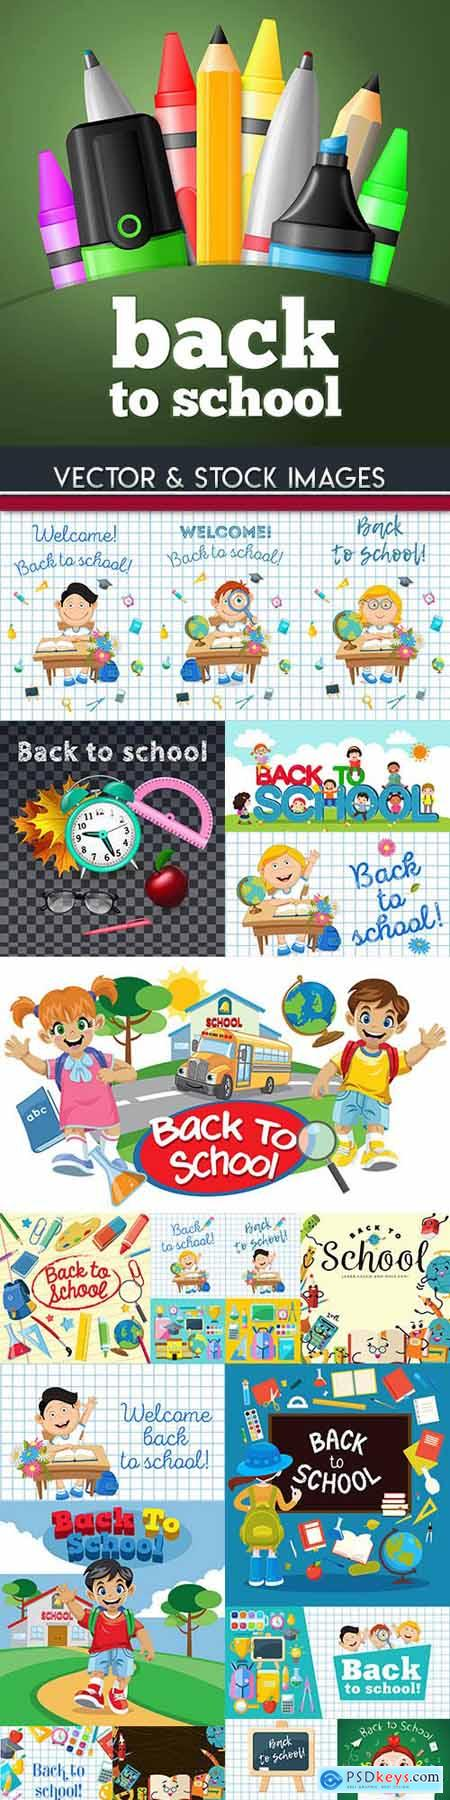 Back to school and accessories collection illustration 33